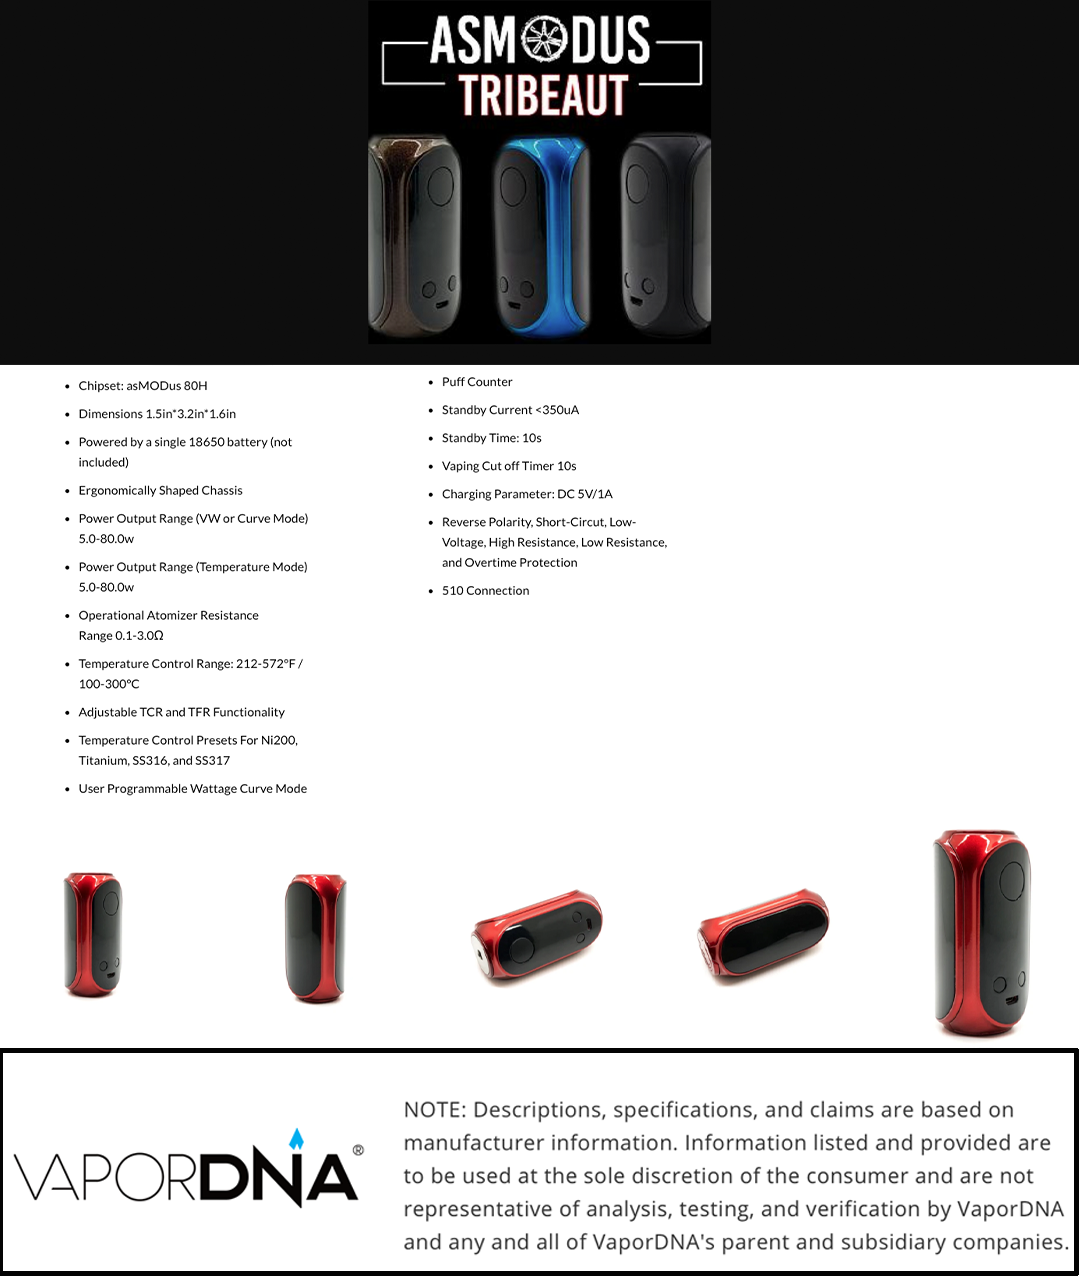 Asmodus-TribeautBoxMod-infographic